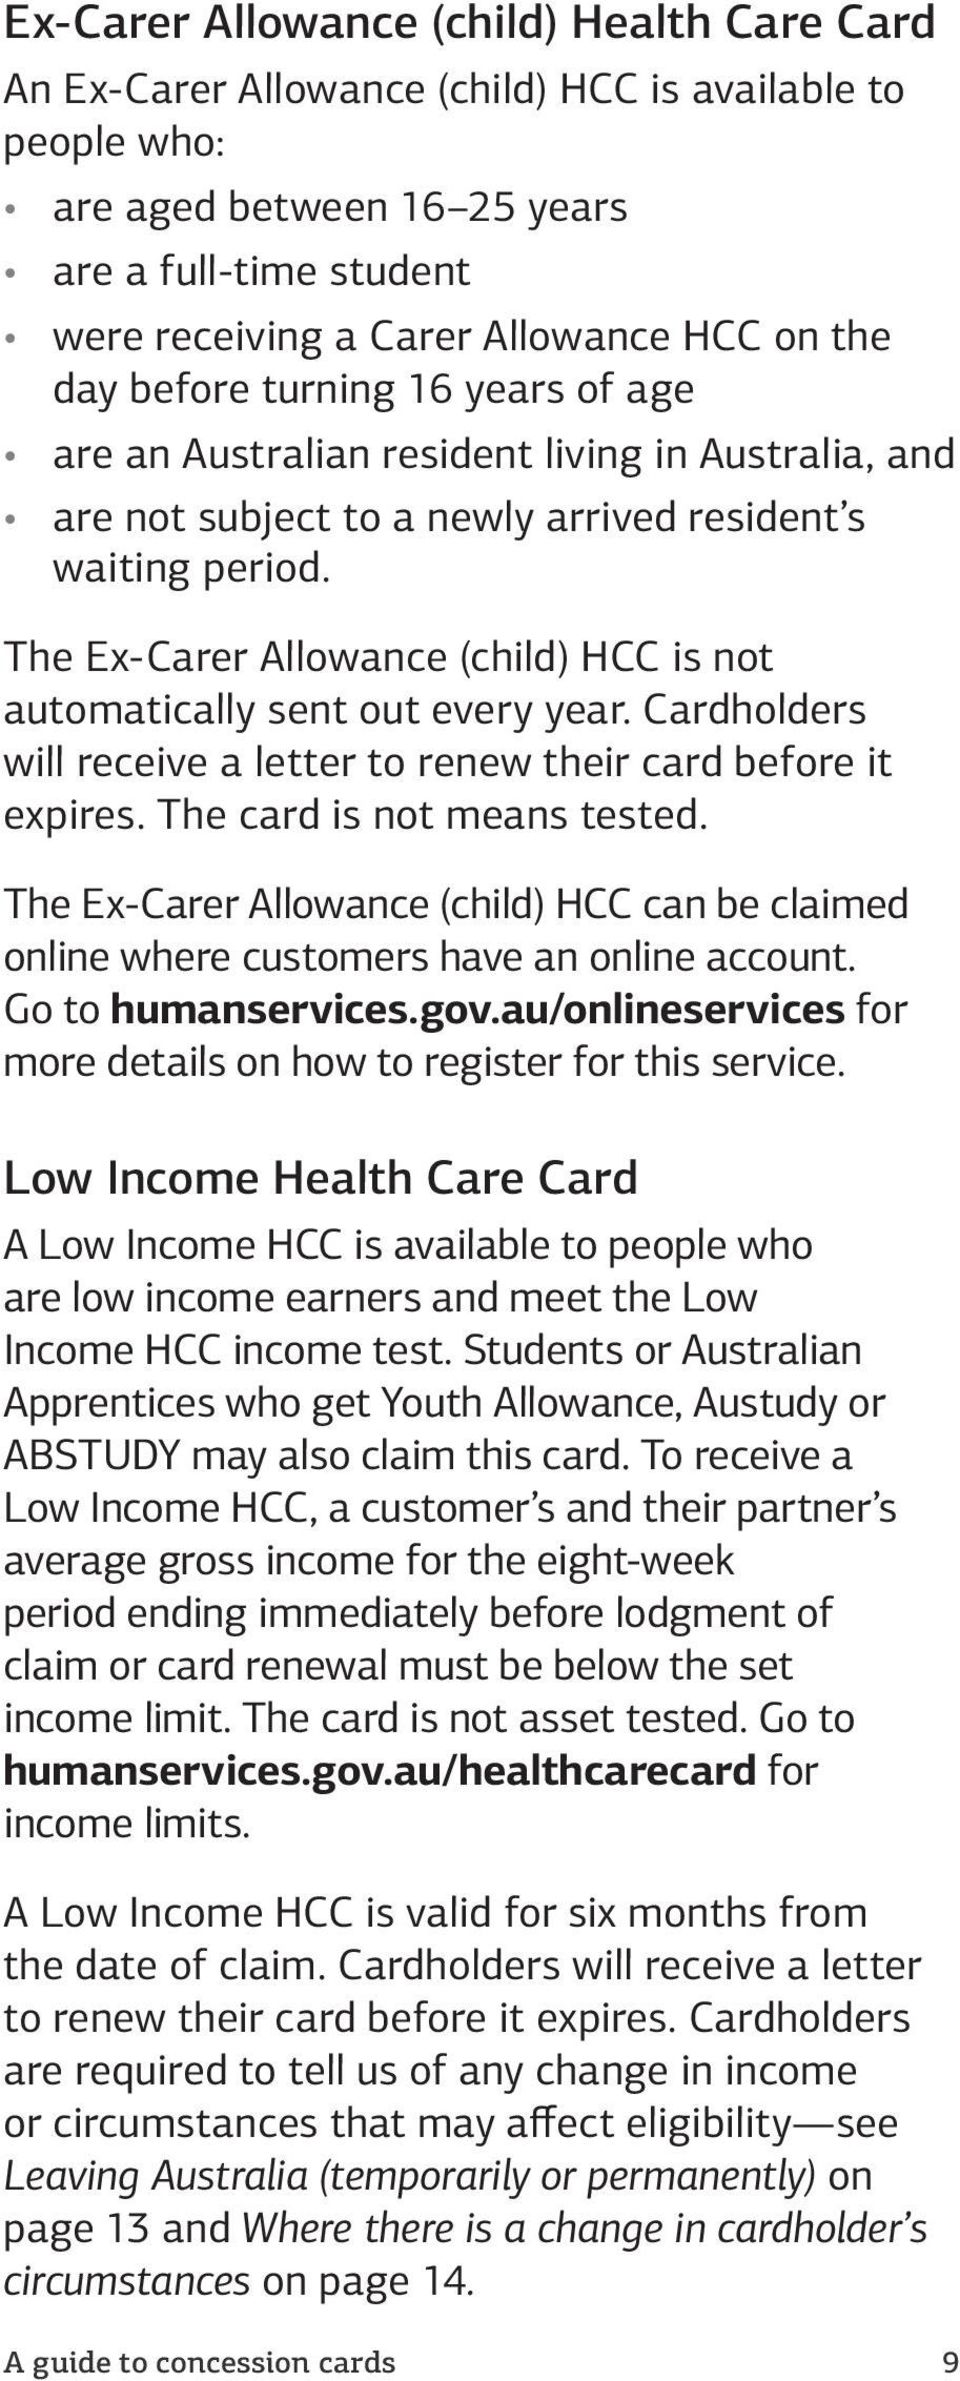 The Ex-Carer Allowance (child) HCC is not automatically sent out every year. Cardholders will receive a letter to renew their card before it expires. The card is not means tested.